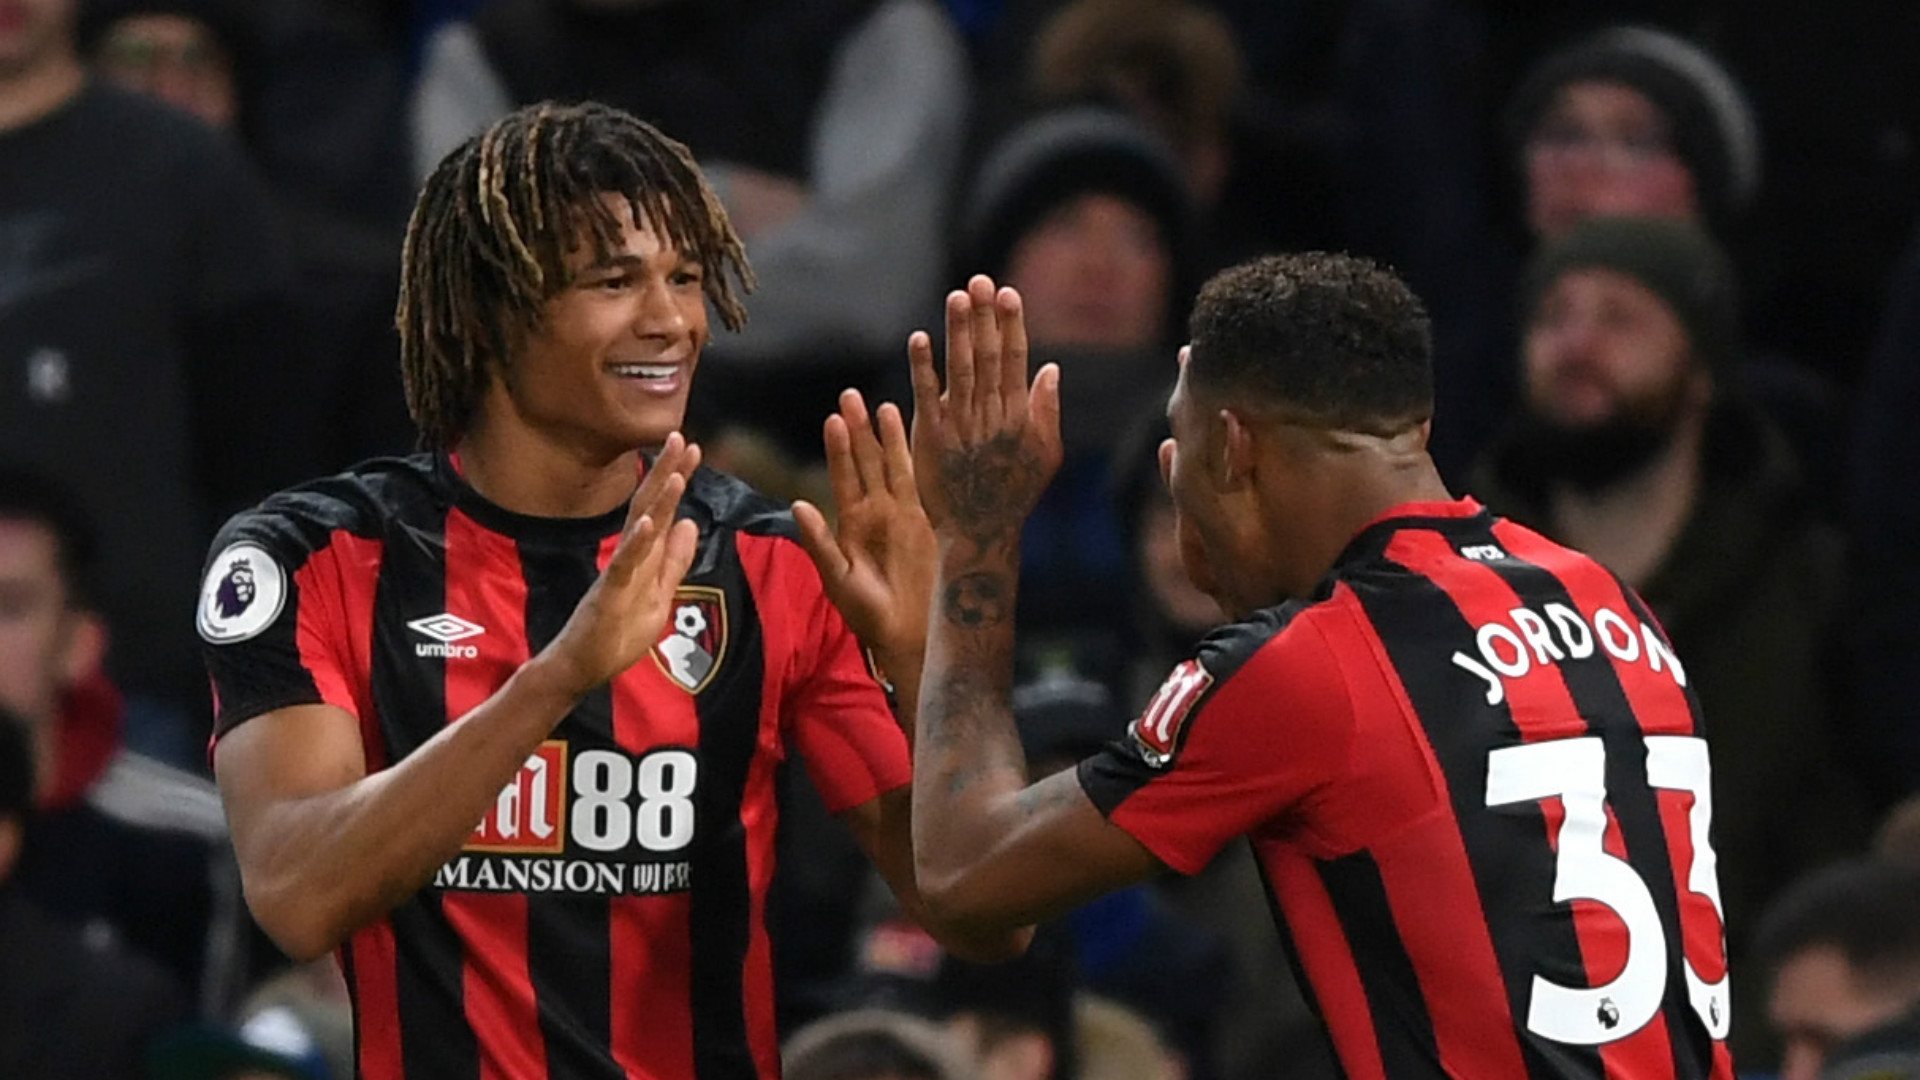 Bournemouth defender Ake laments 'sloppy' Tottenham goals